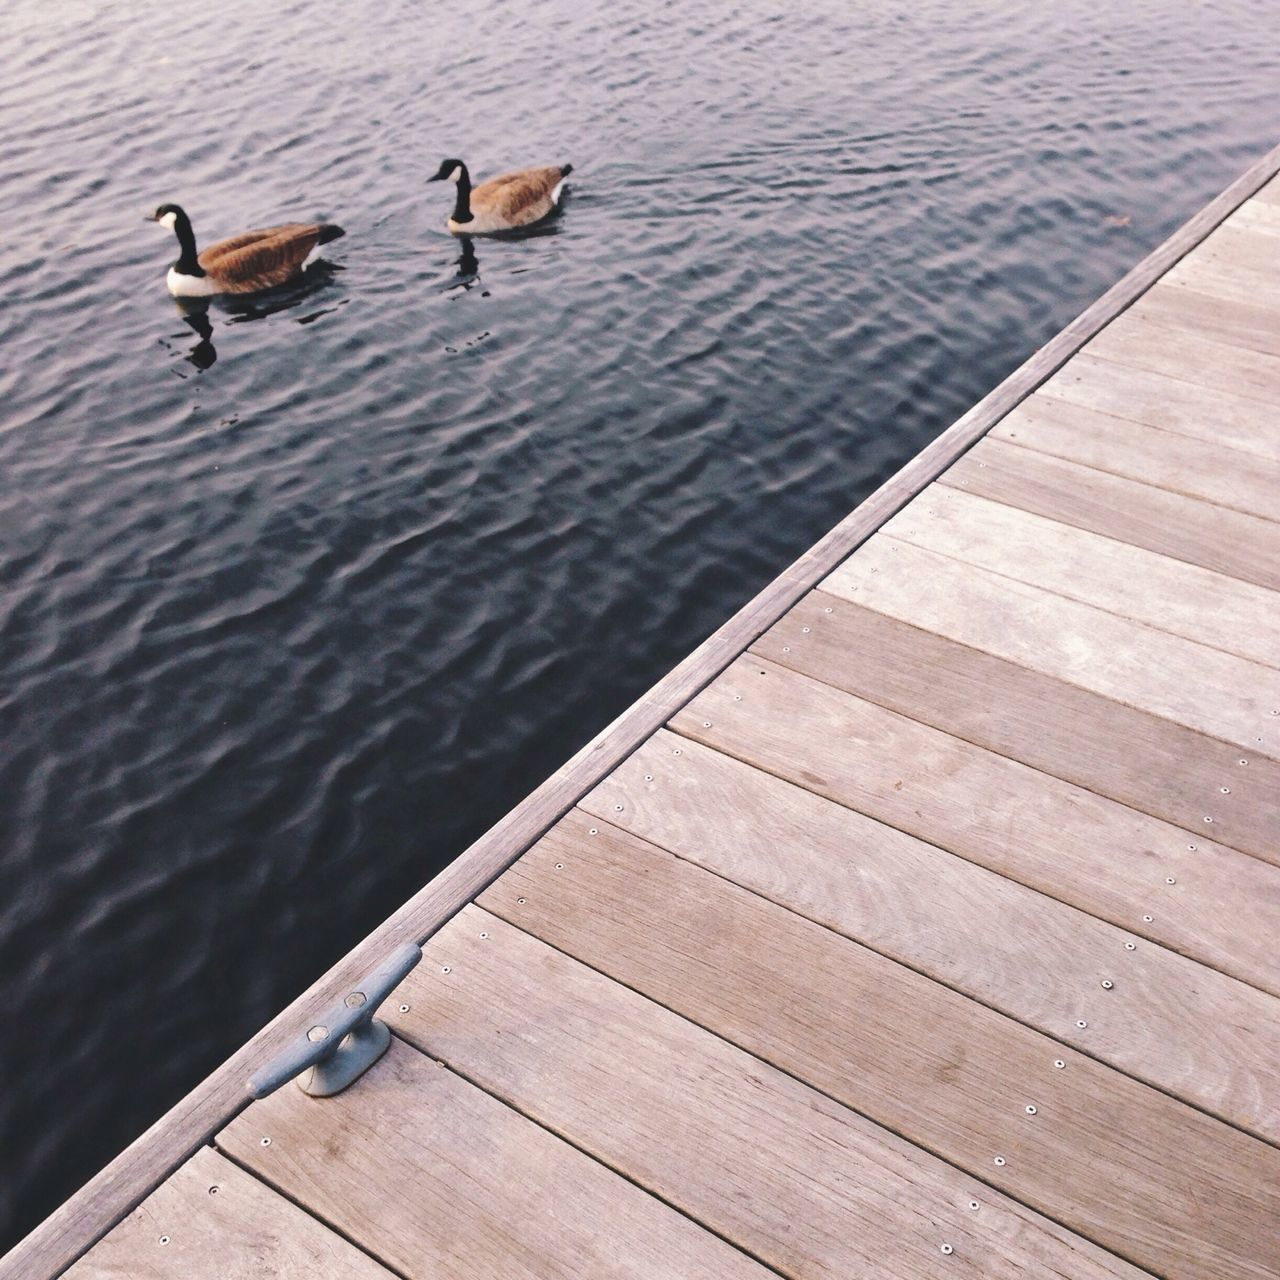 Geese swimming in lake by pier